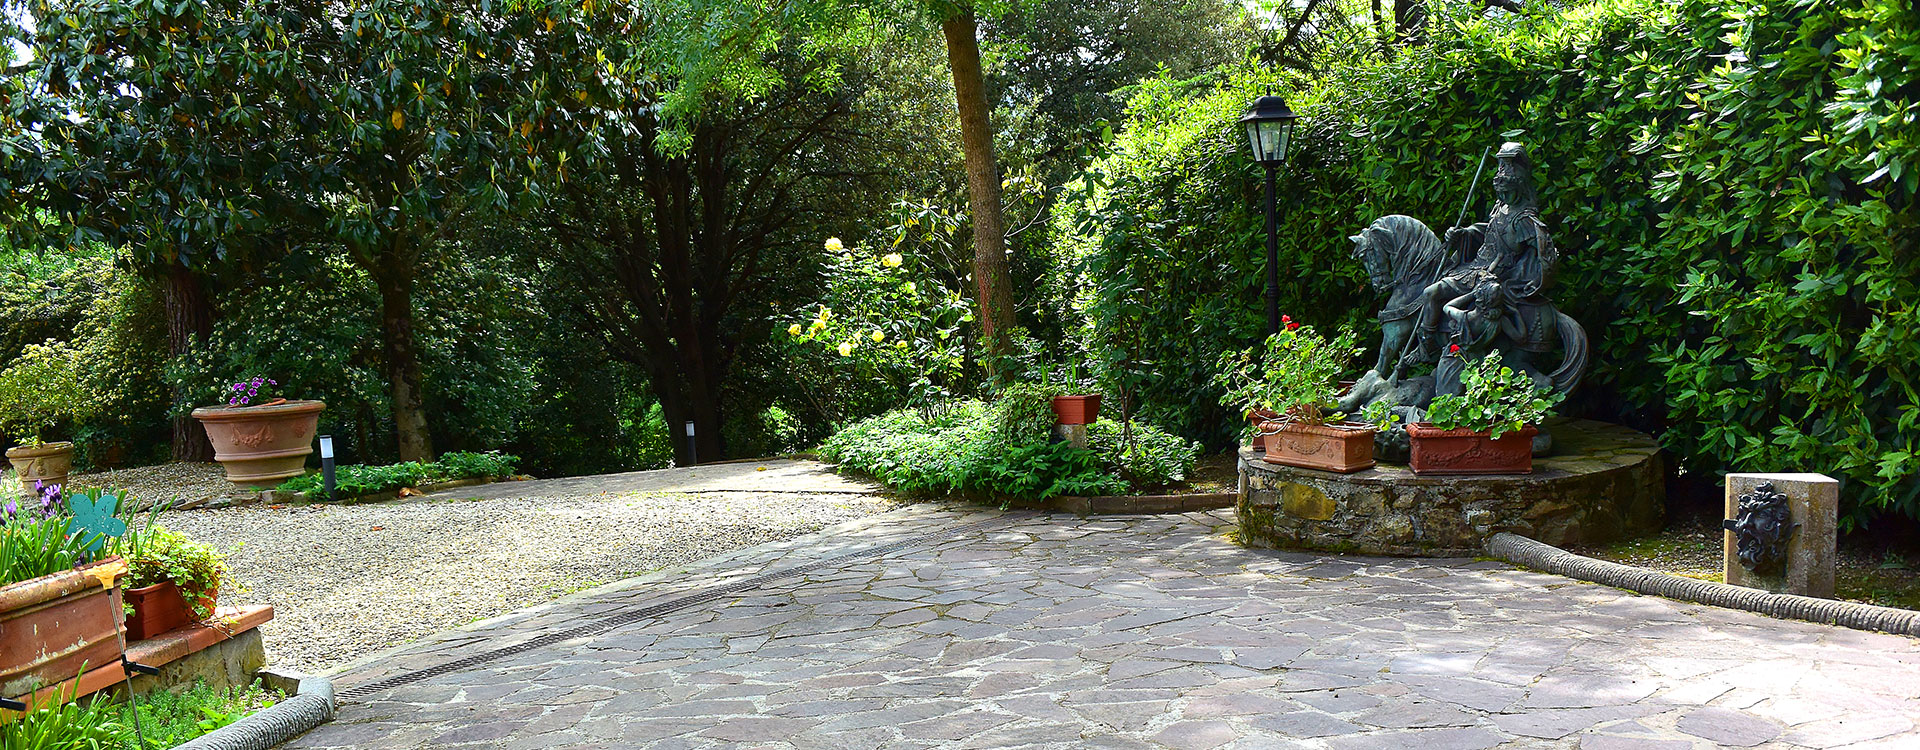 Bed and Breakfast Firenze La borraina